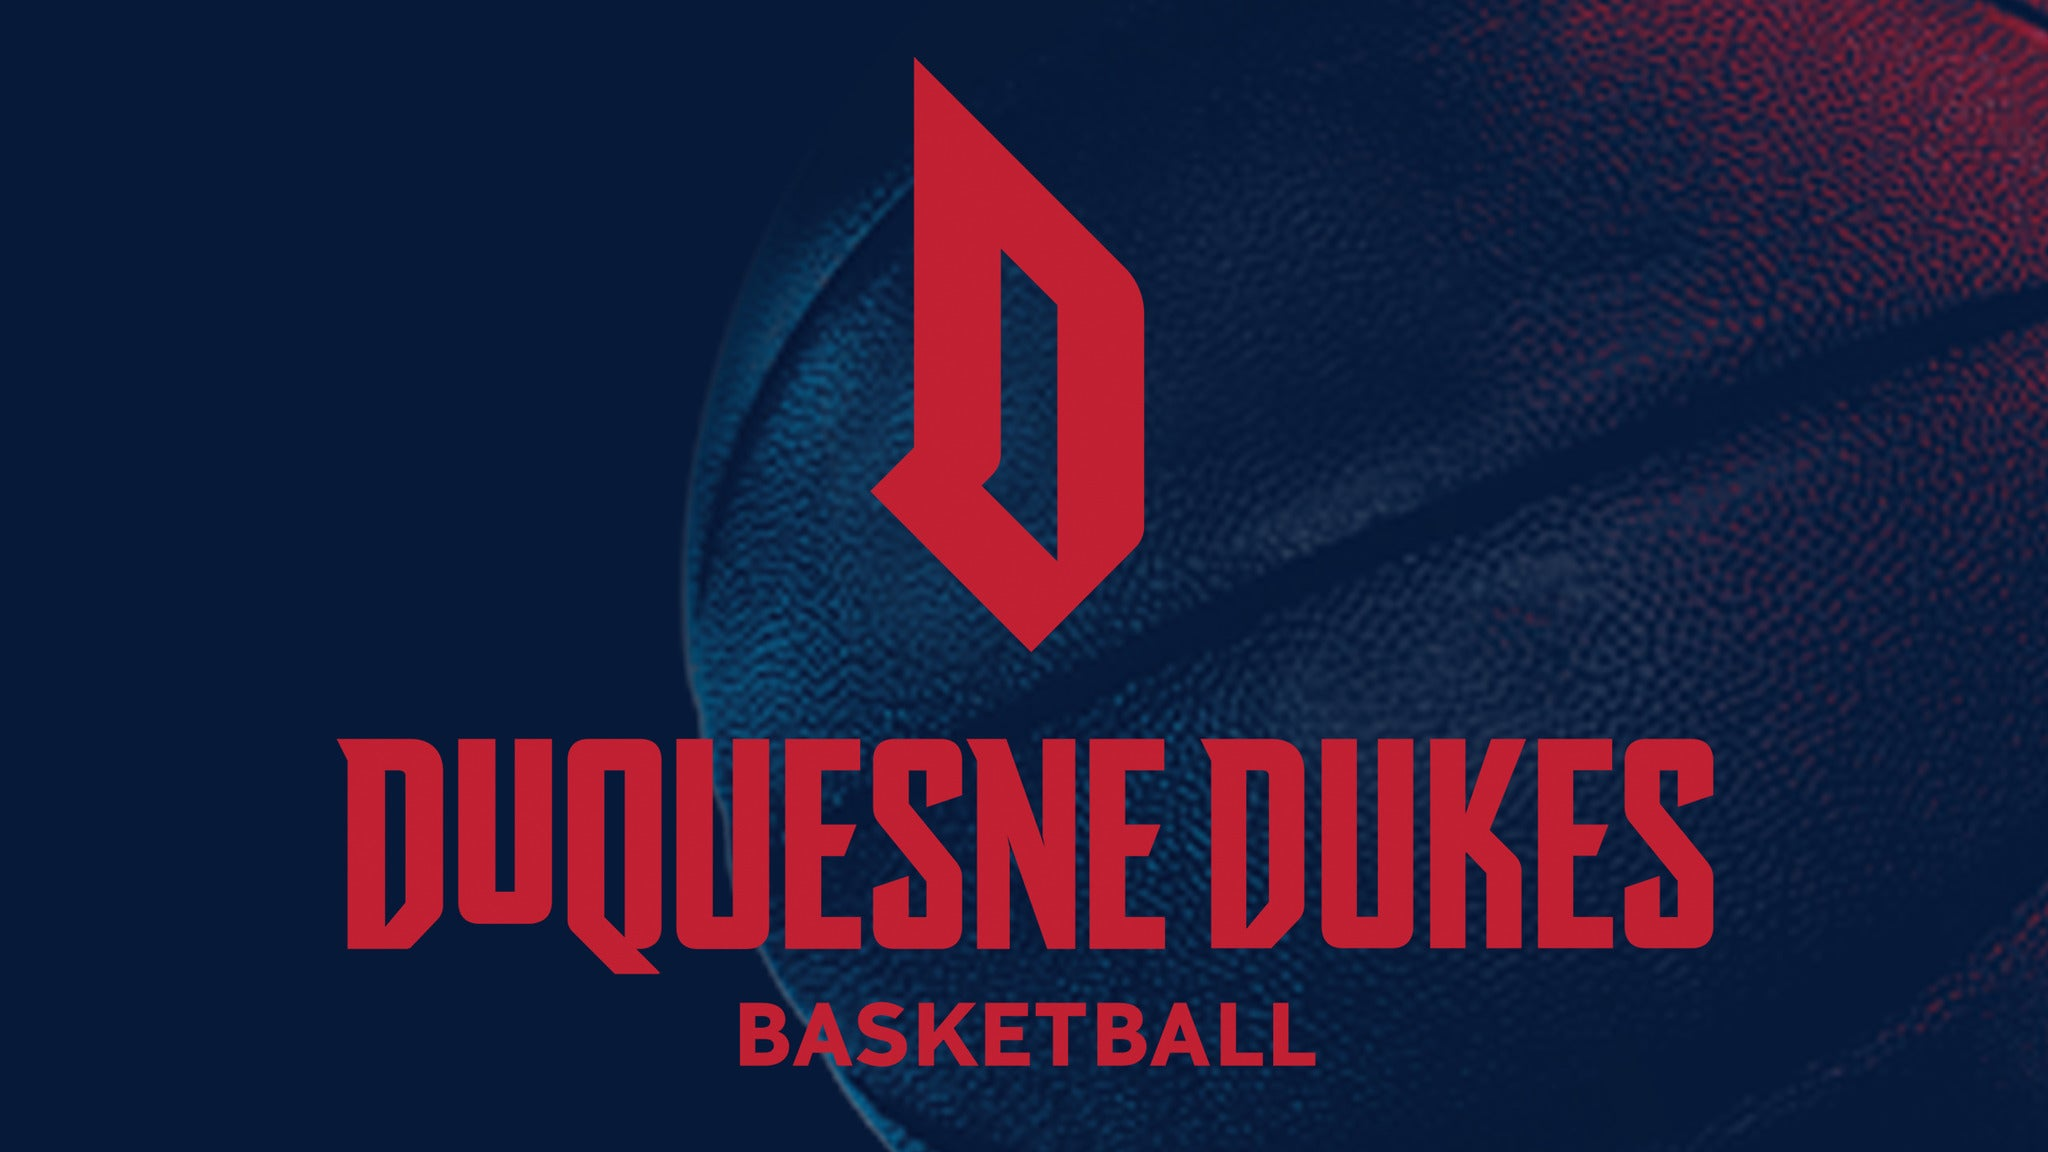 SORRY, THIS EVENT IS NO LONGER ACTIVE<br>Duquesne Dukes V. Dayton Flyers at Webster Bank Arena - Bridgeport, CT 06604